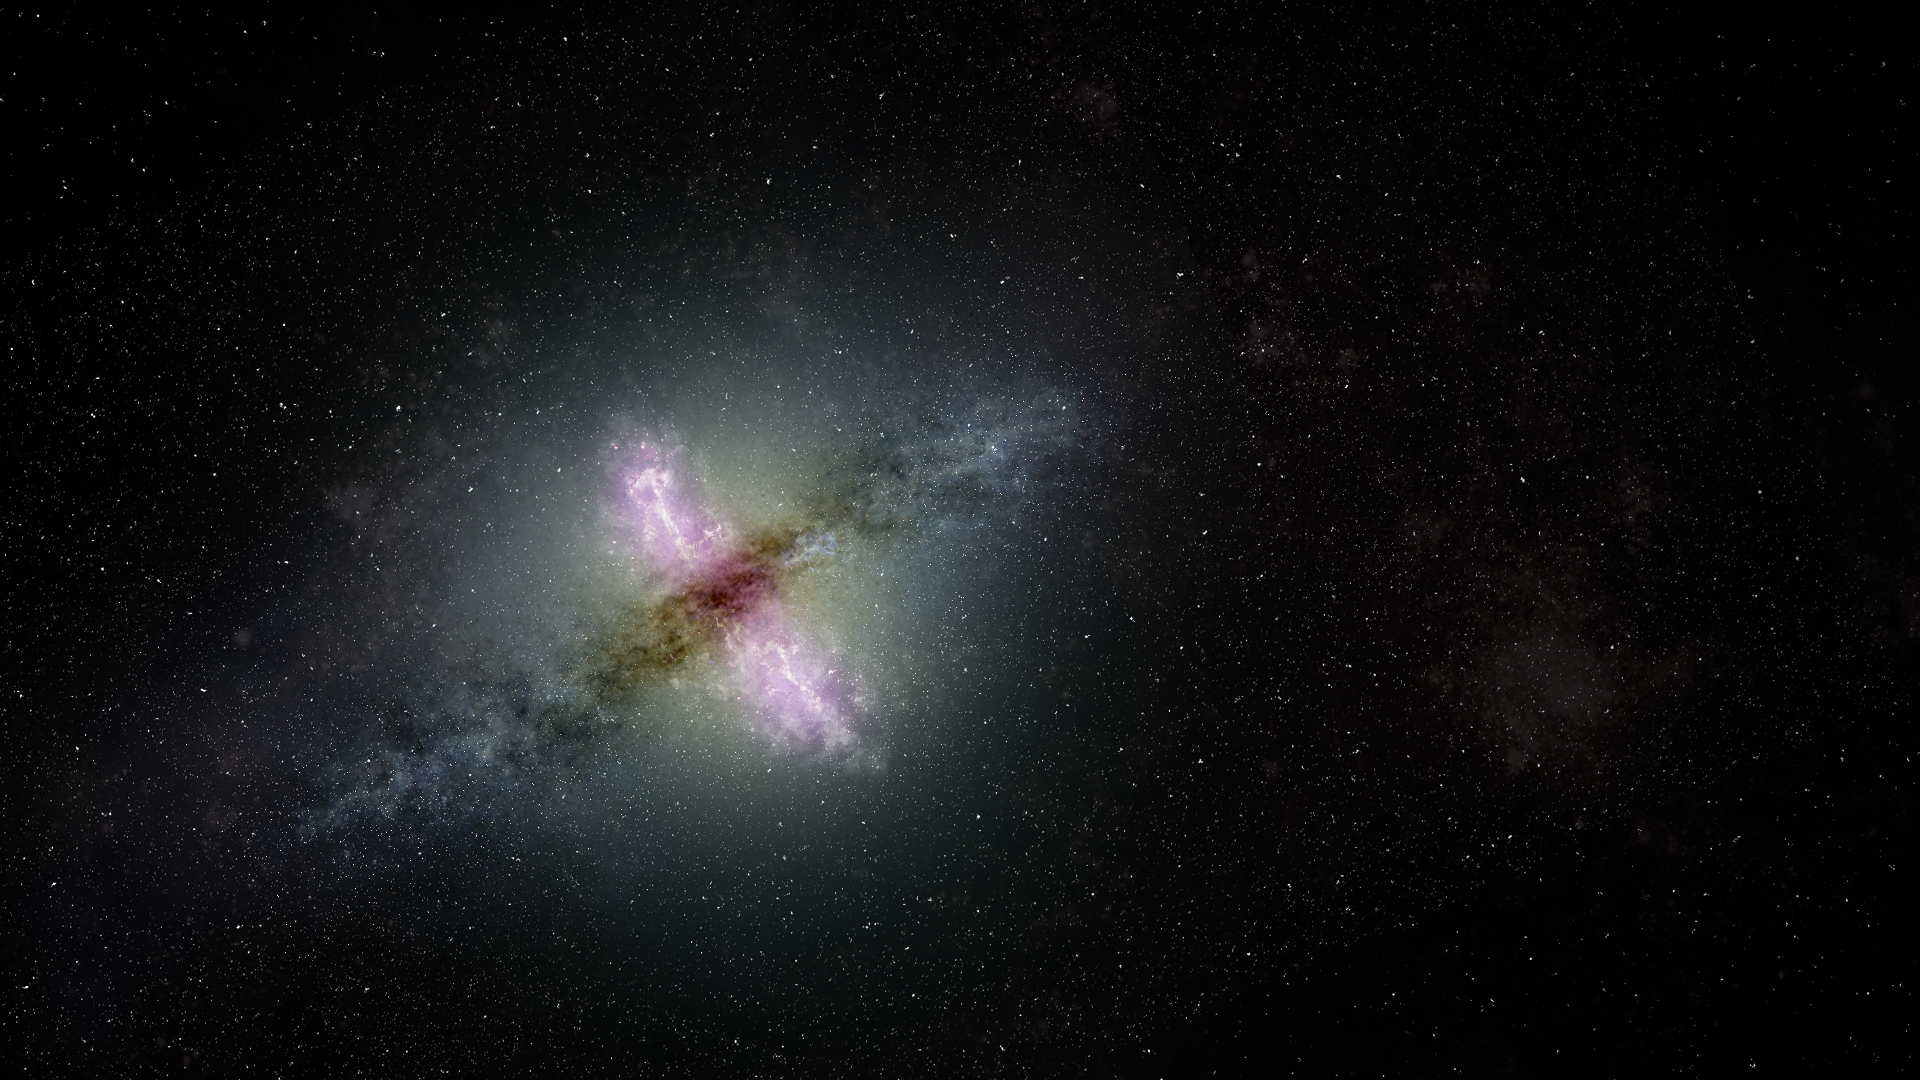 illustration of a galaxy with giant jets